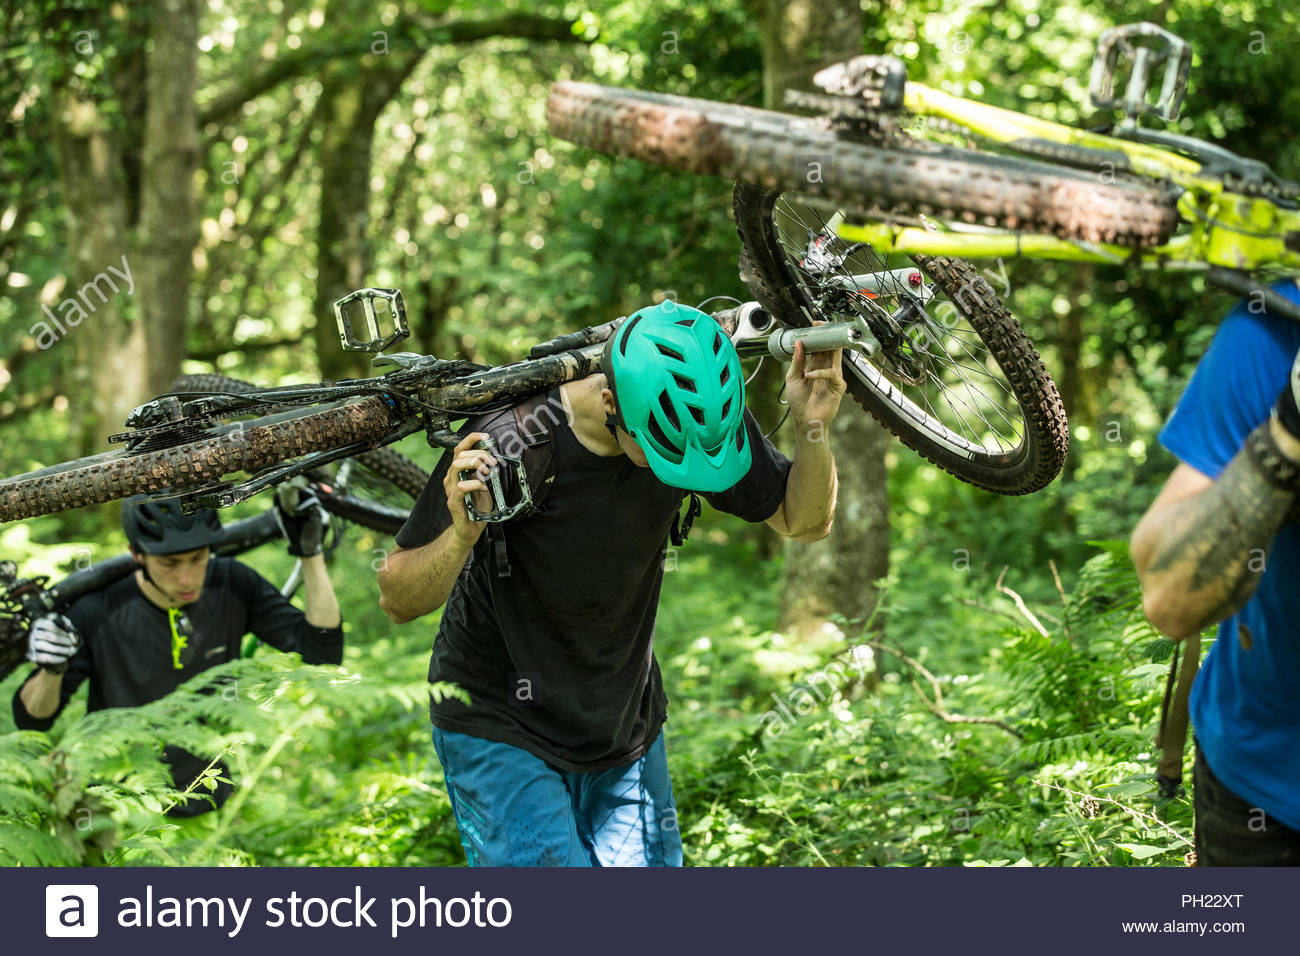 Friends carrying mountain bikes uphill in a forest - Stock Image